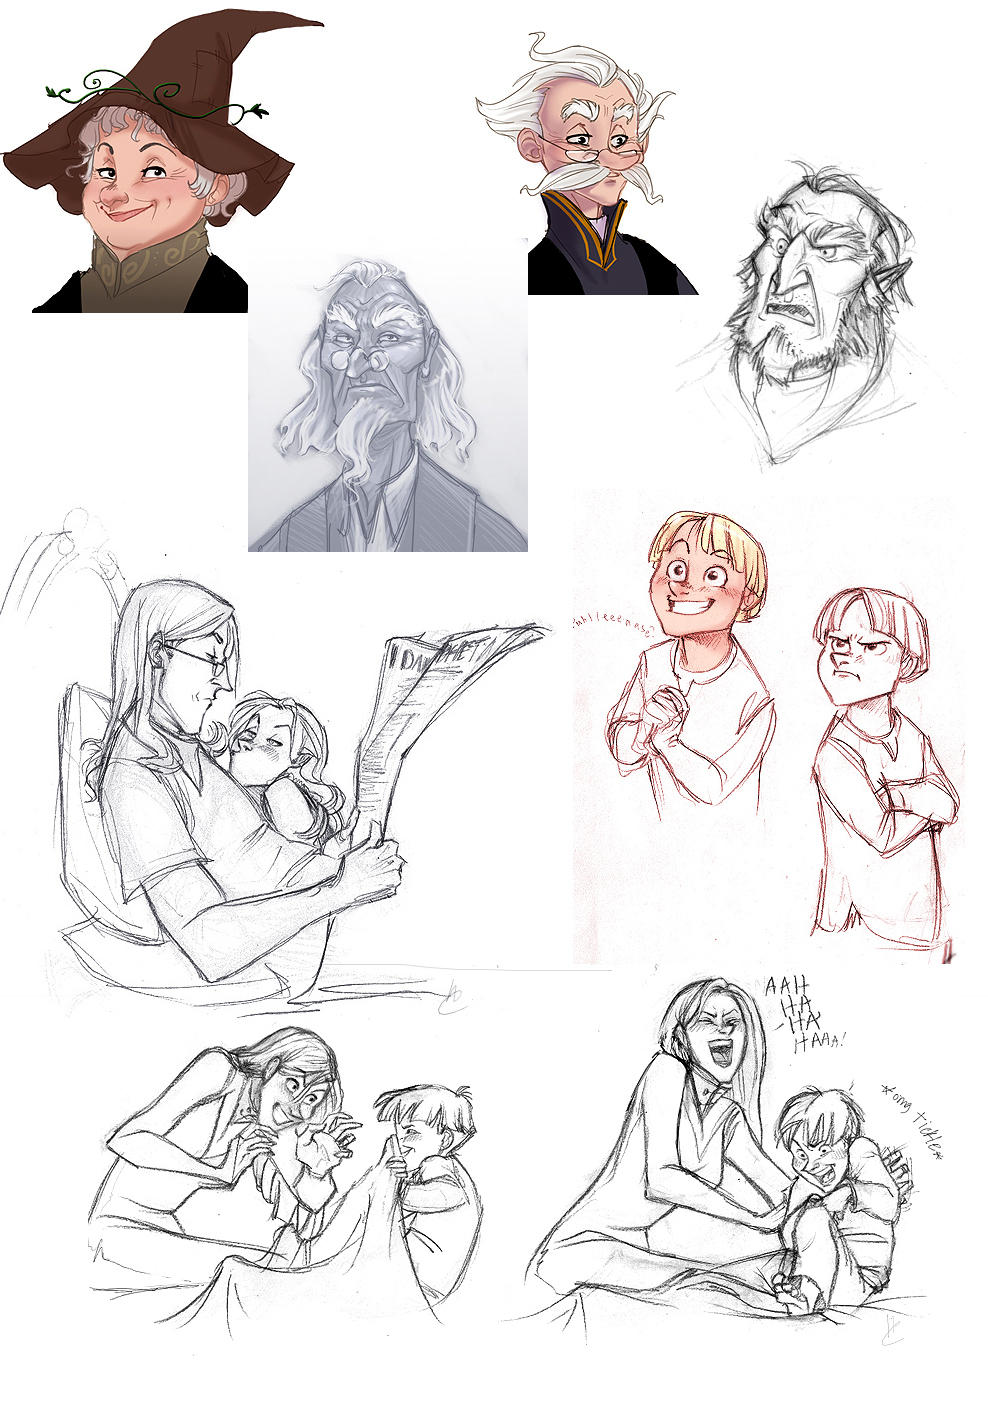 hp sketchdump 052306 by makani